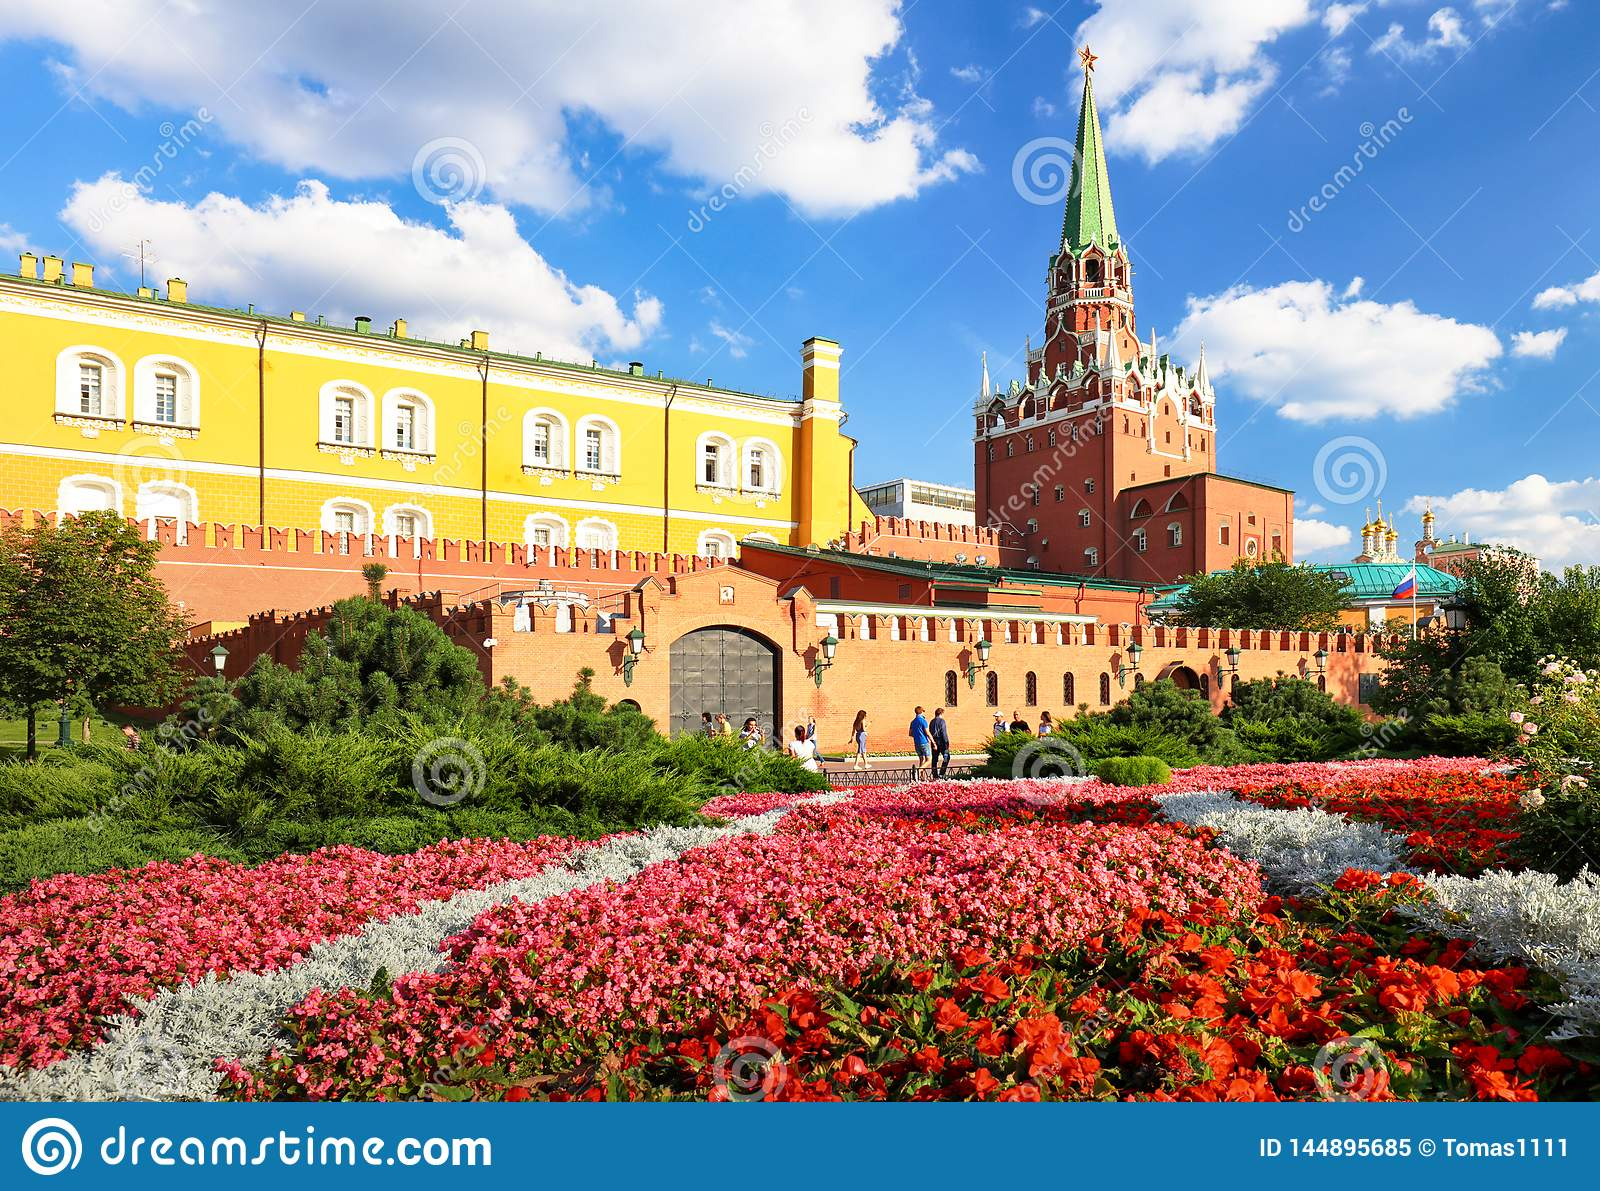 Kremlin in Moscow with flowers park, Russia